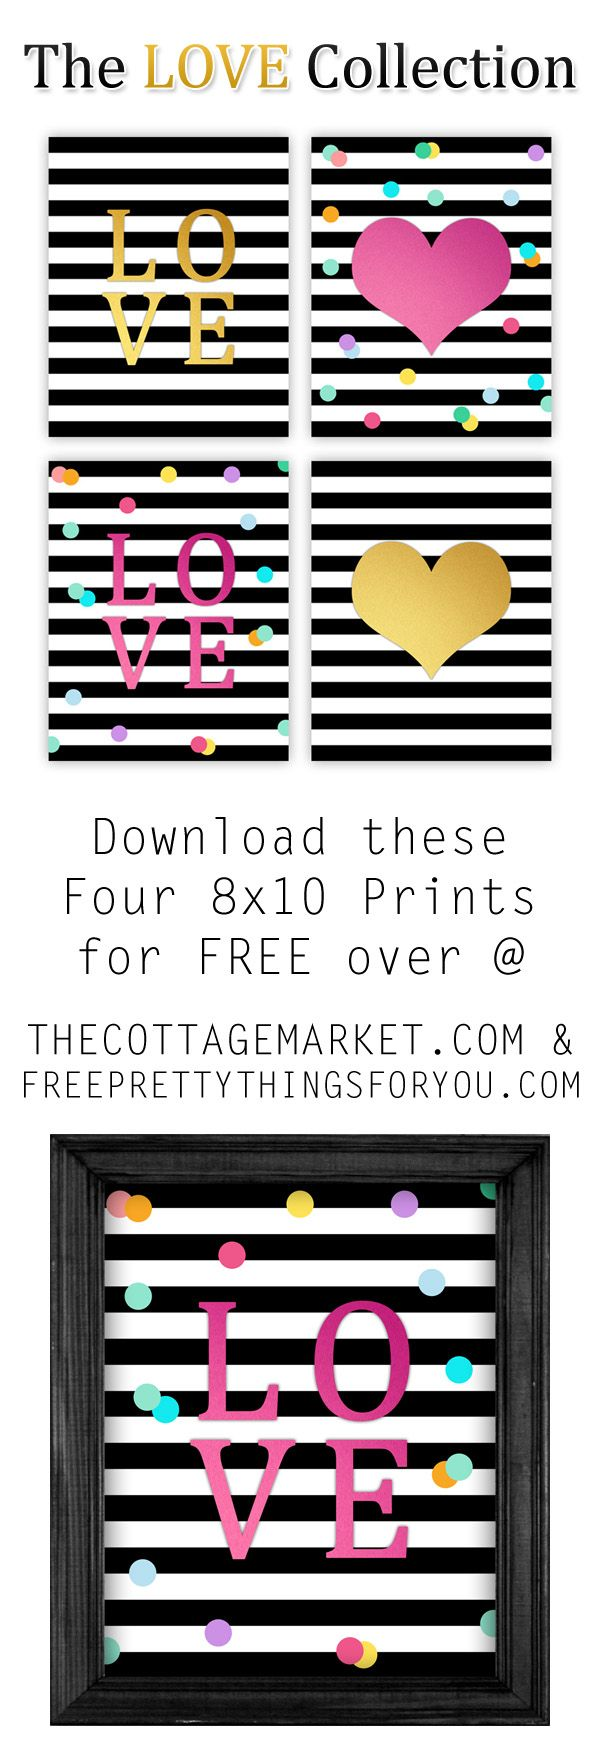 Free Printable Wall Art {Love Collection} - The Cottage Market